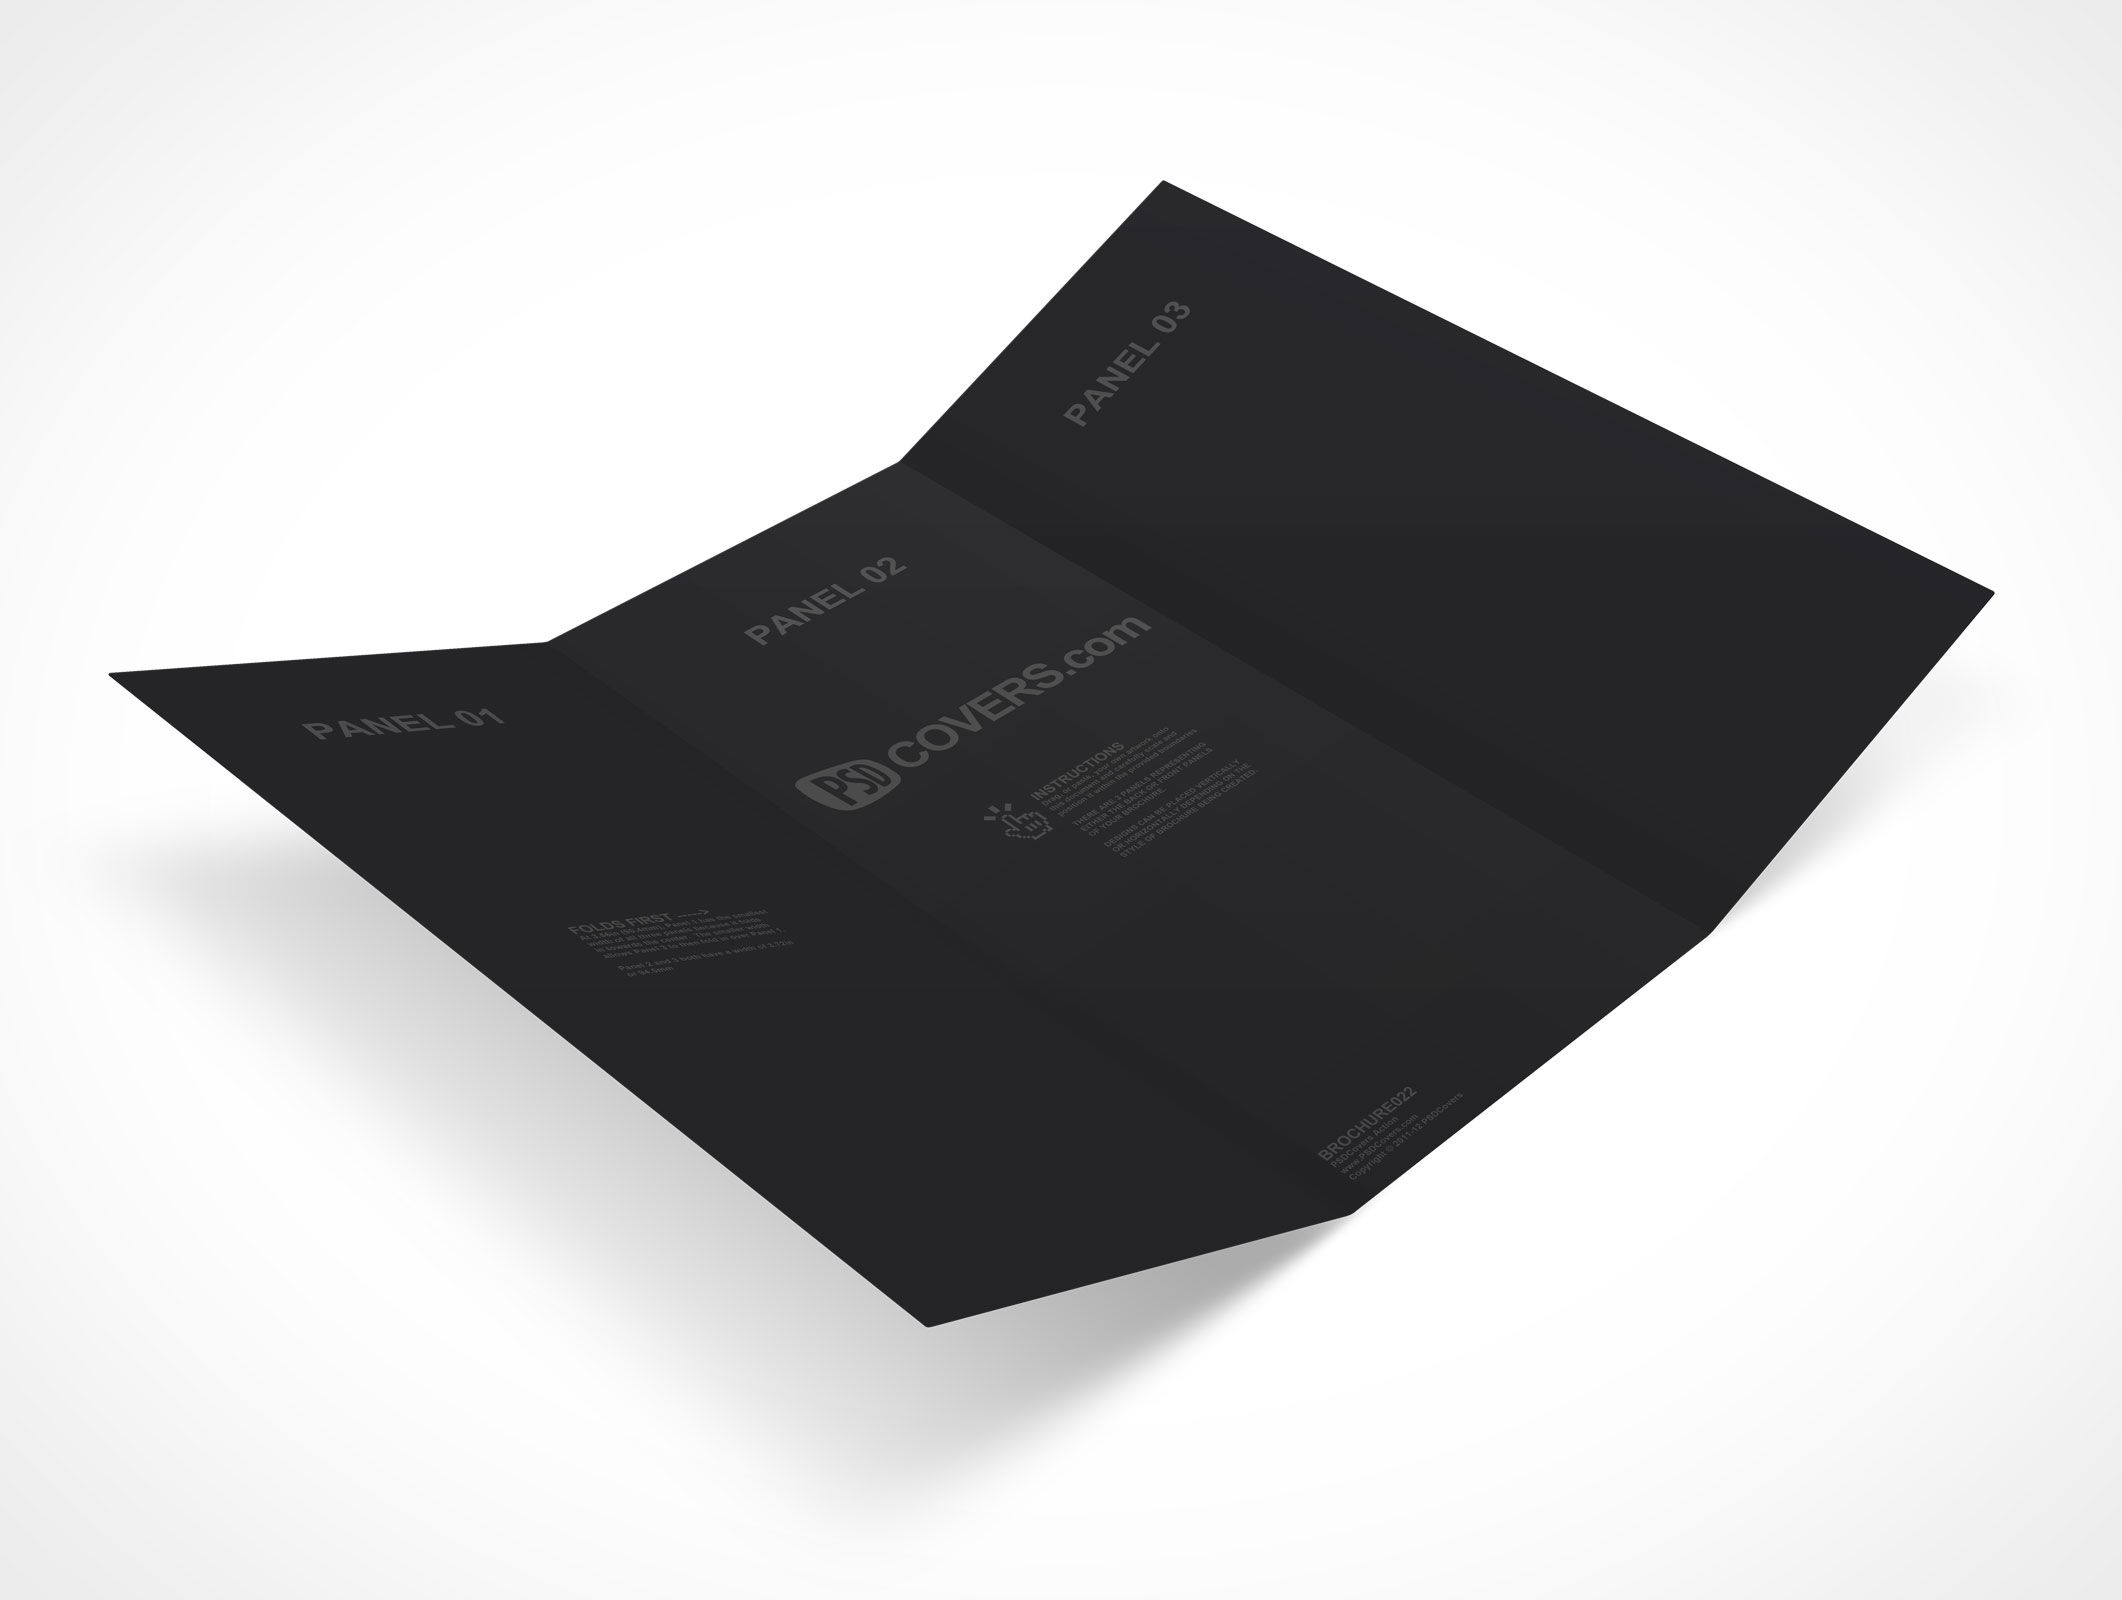 Brochure022 Is A Free Mockup Template For A Letter Sized 3 Panel Brochure This 8 5 11 Inch Tri Fold Is Laying On Greeting Card Template Card Template Brochure